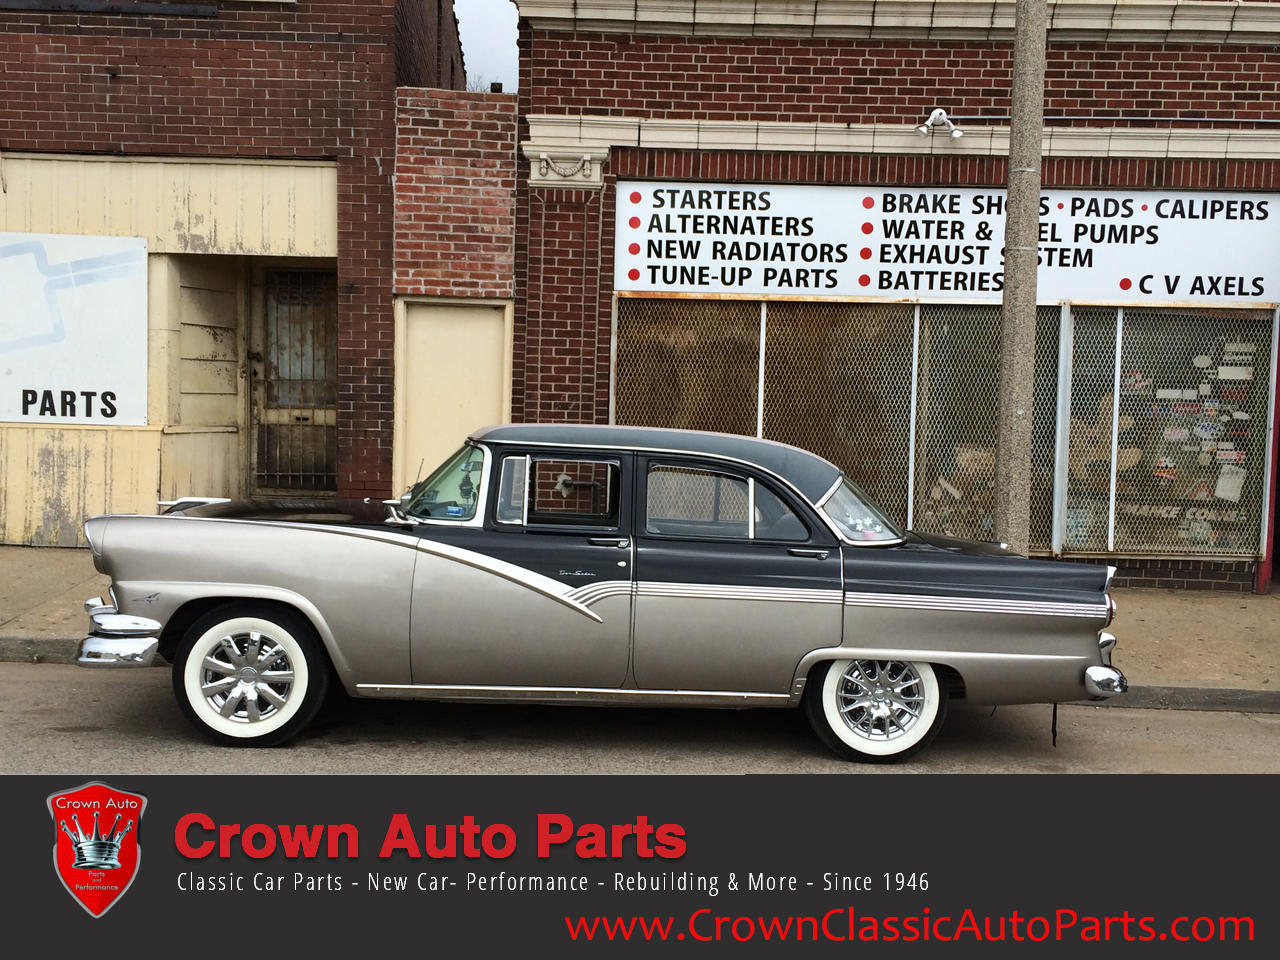 Crown Auto Parts & Rebuilding image 19